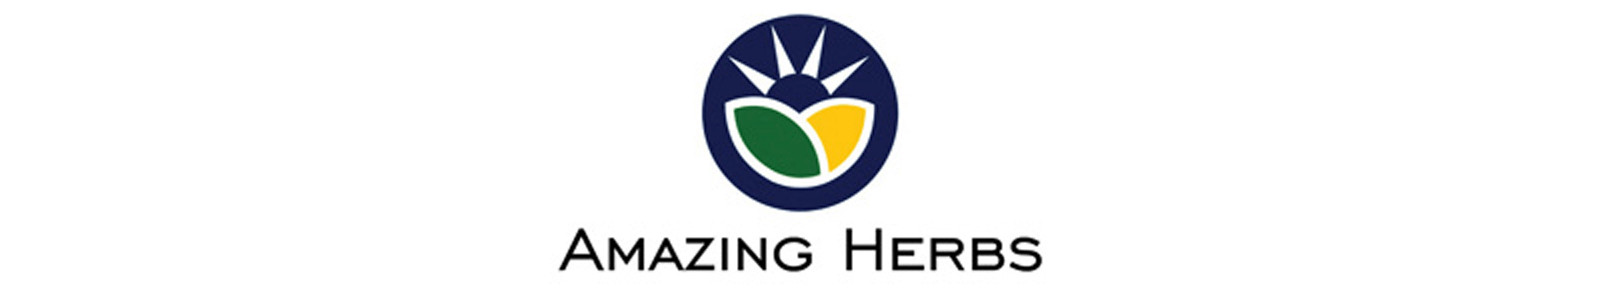 Brands - Amazing Herbs